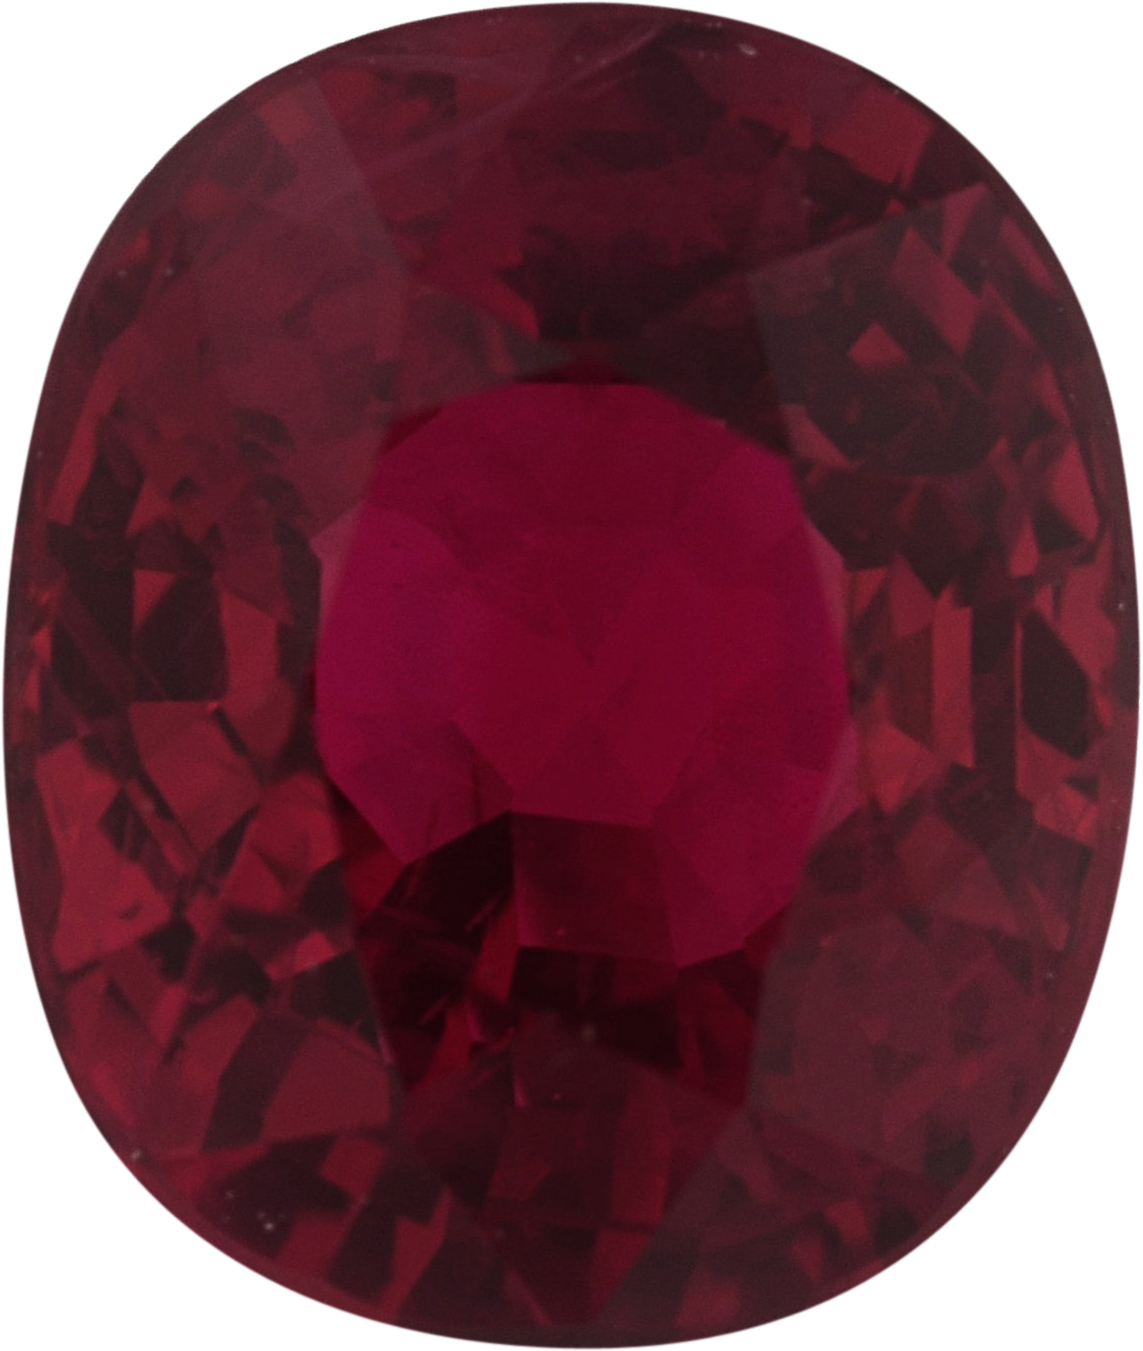 7.03 x 5.93 mm, Antique Cushion Cut Genuine Ruby Gem, Strong Red, 1.53 carats